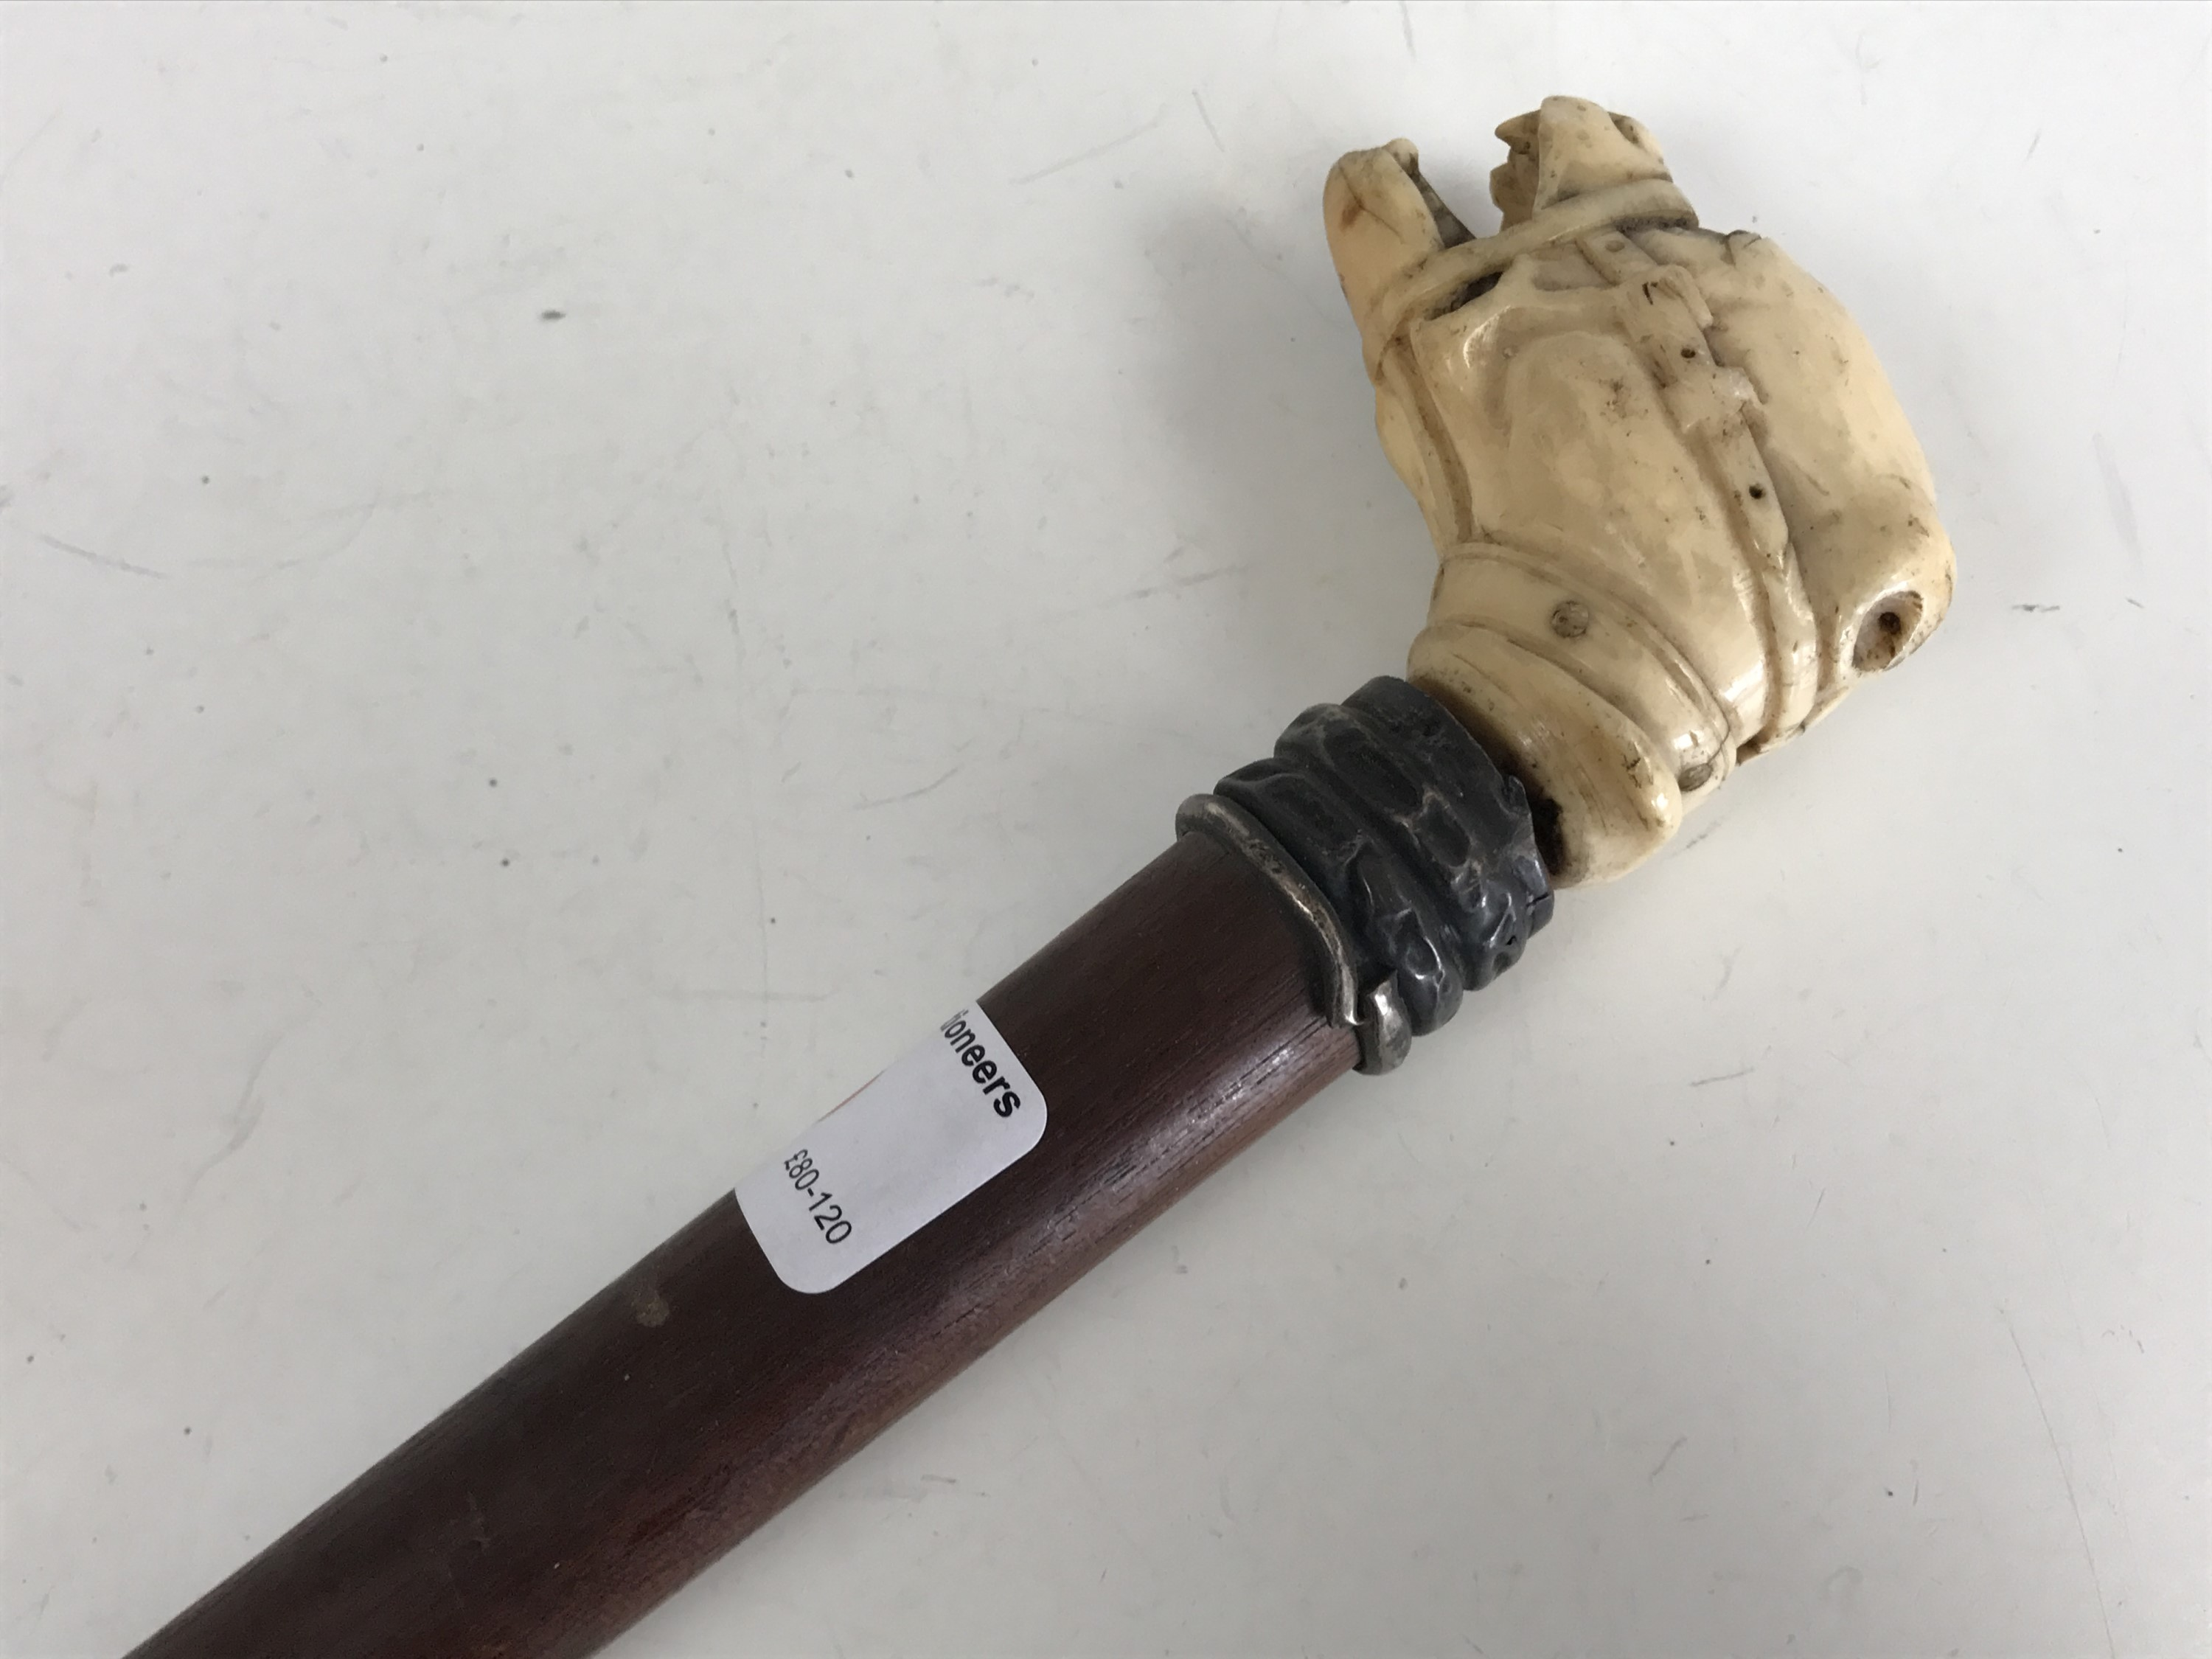 Lot 30 - A Victorian walking cane with ivory pommel carved as a snarling dog's head